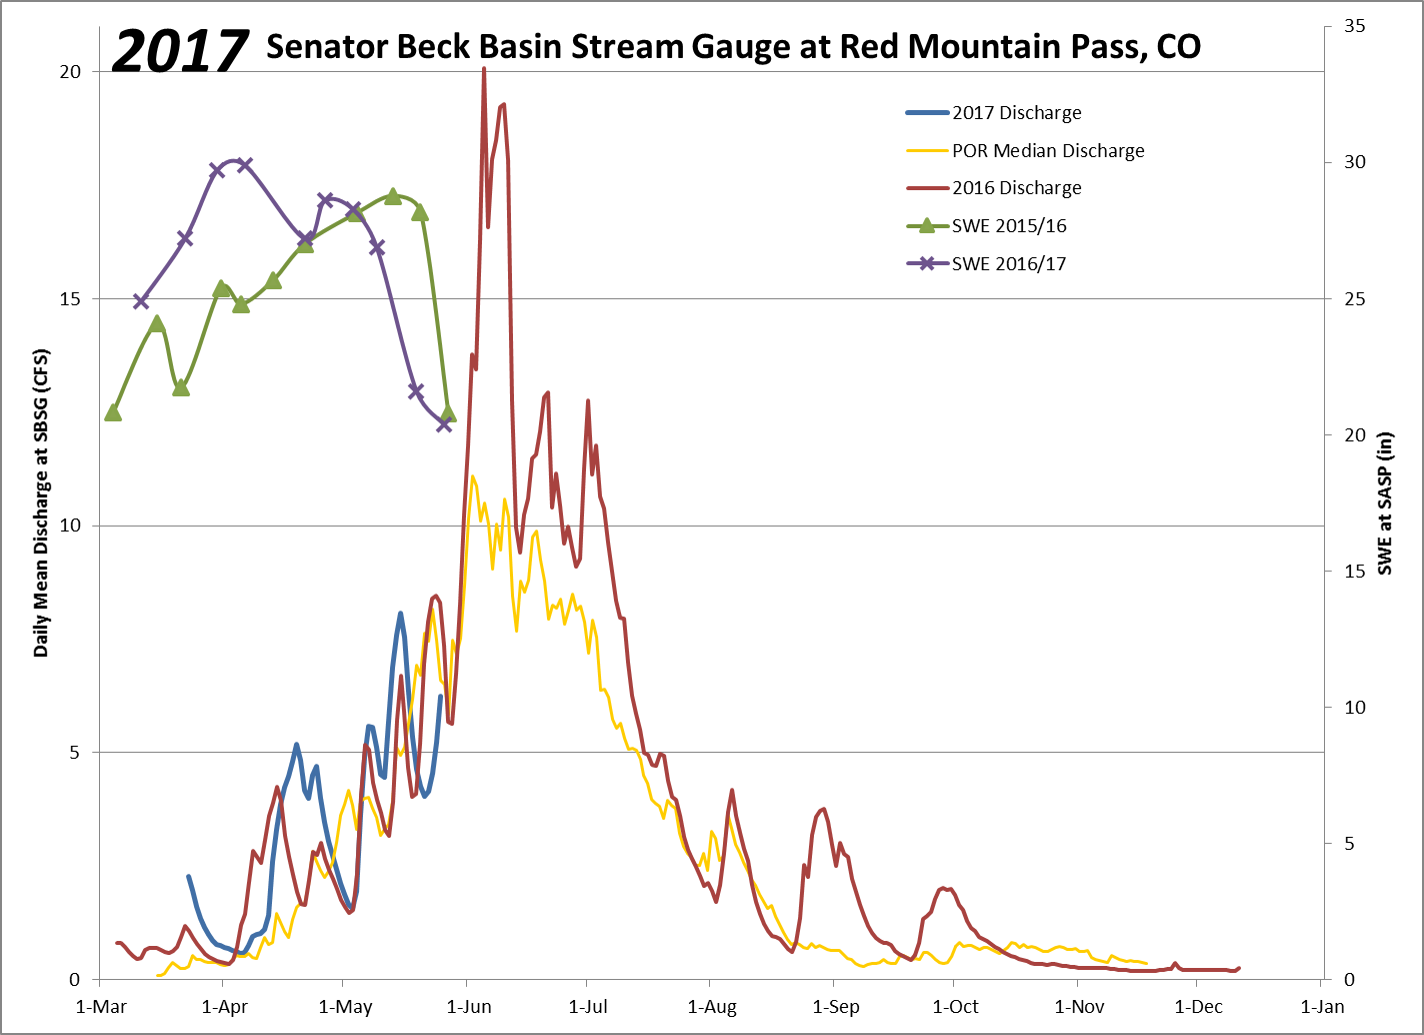 Stream discharge at SBB. Discharge so far this WY2017 (blue line) is compared with WY2016 (red line) and period of record (yellow line). Current SWE conditions are shown in purple. And WY2016 SWE conditions are shown in green. Additional snow and albedo resets with a cooler than average May in 2016 and 2017 (so far, these last 4 weeks) have delayed snowmelt, and streamflow appears on track for peaking near the median time-frame. Given our current status, it will be interesting to see how runoff compares with last year, there are of course many differences, but it may be useful to look at the influence of other variables, like soil moisture.